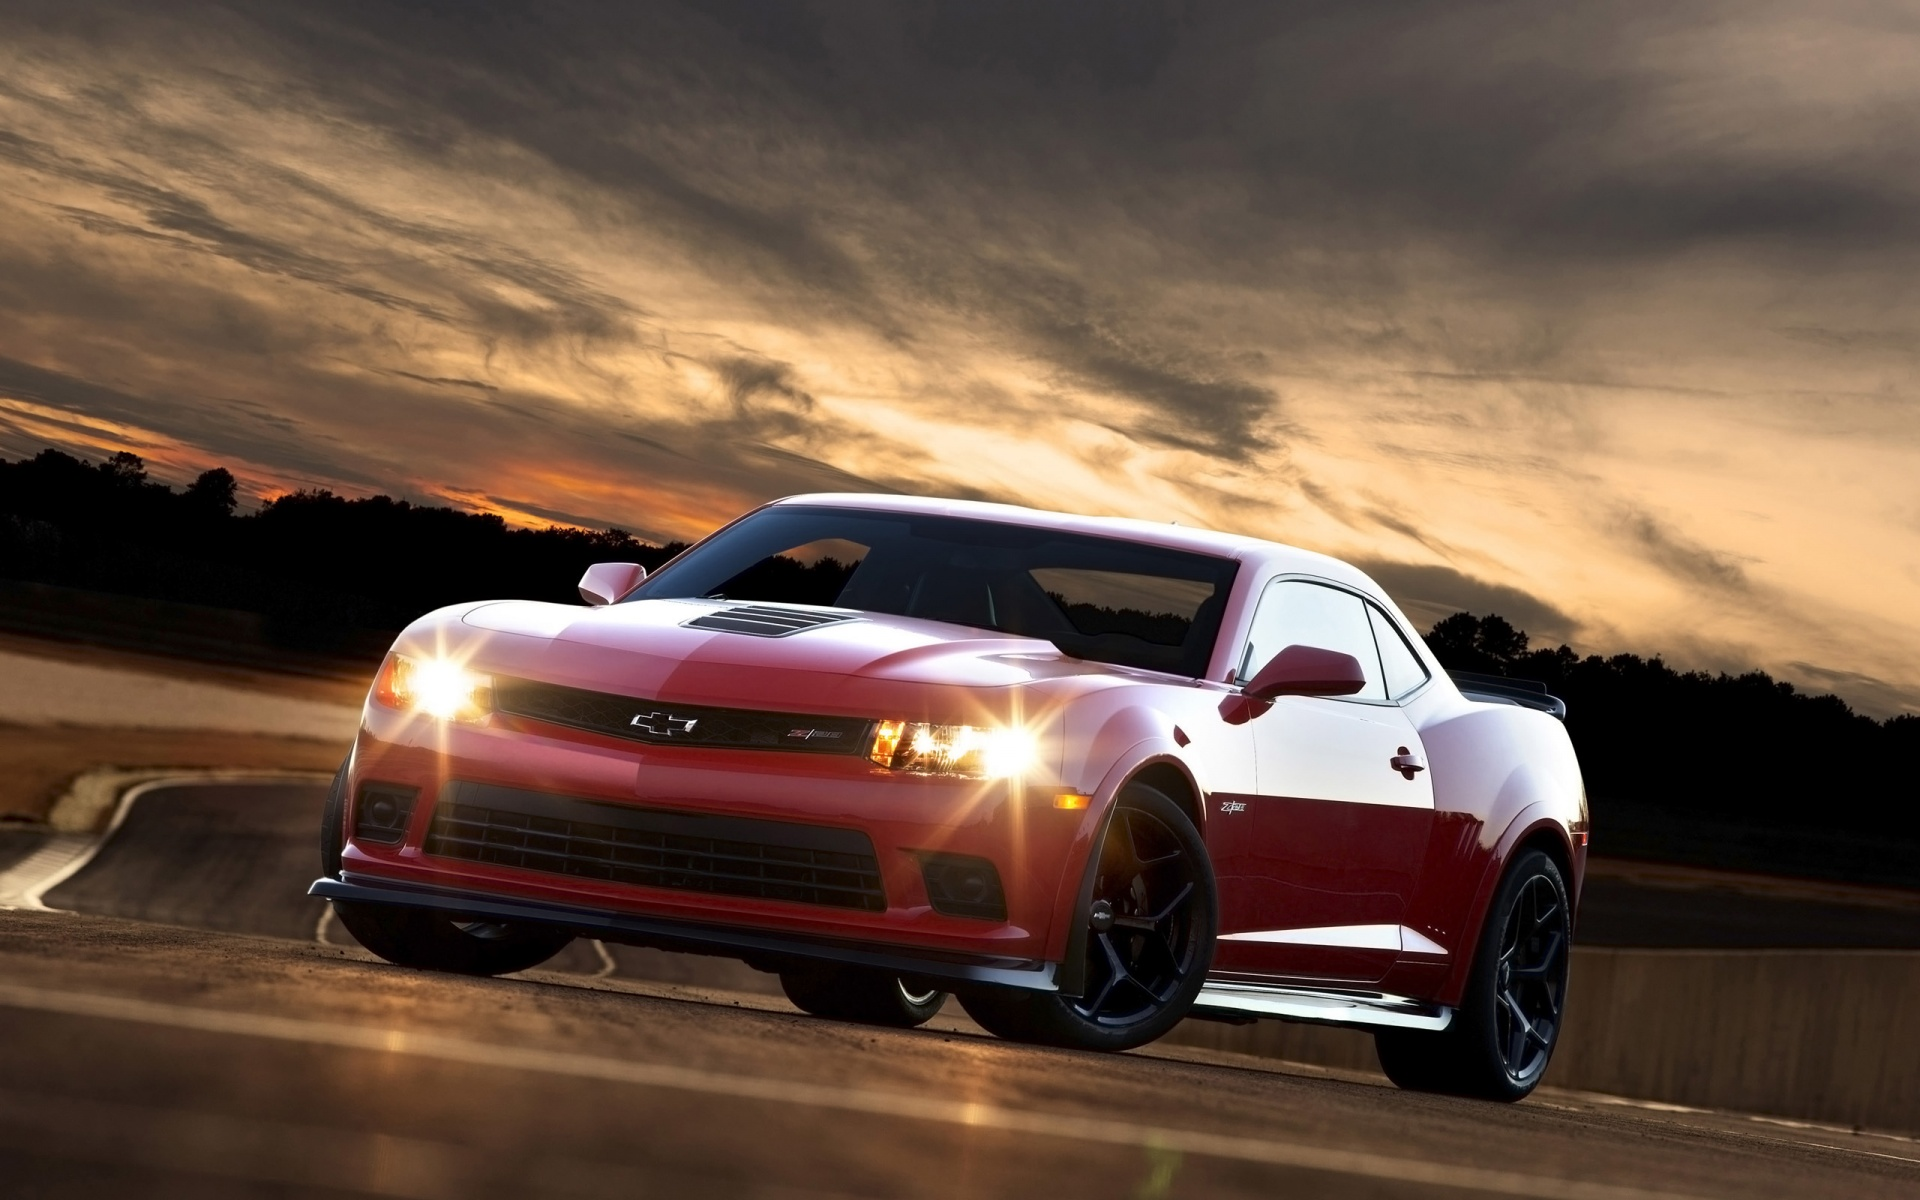 2015 Chevrolet Camaro Z28 Wallpaper HD Car Wallpapers 1920x1200